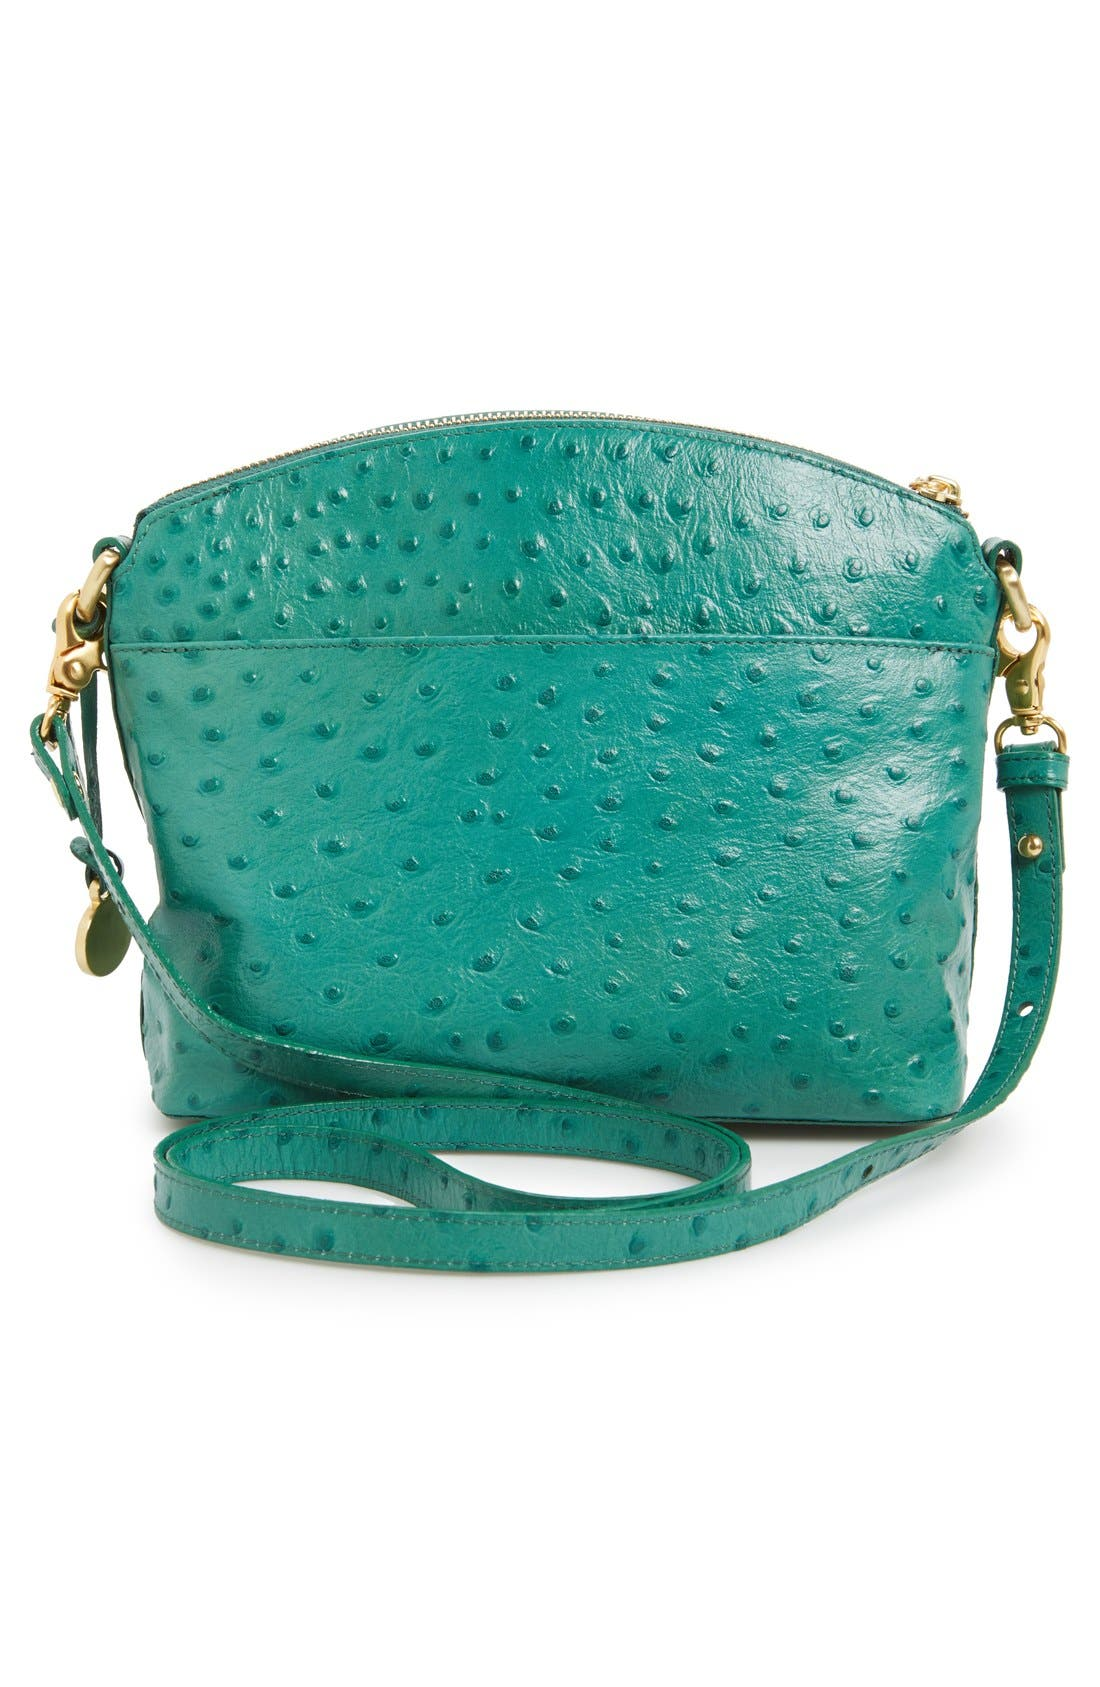 Alternate Image 3  - Brahmin 'Mini Duxbury' Leather Crossbody Bag